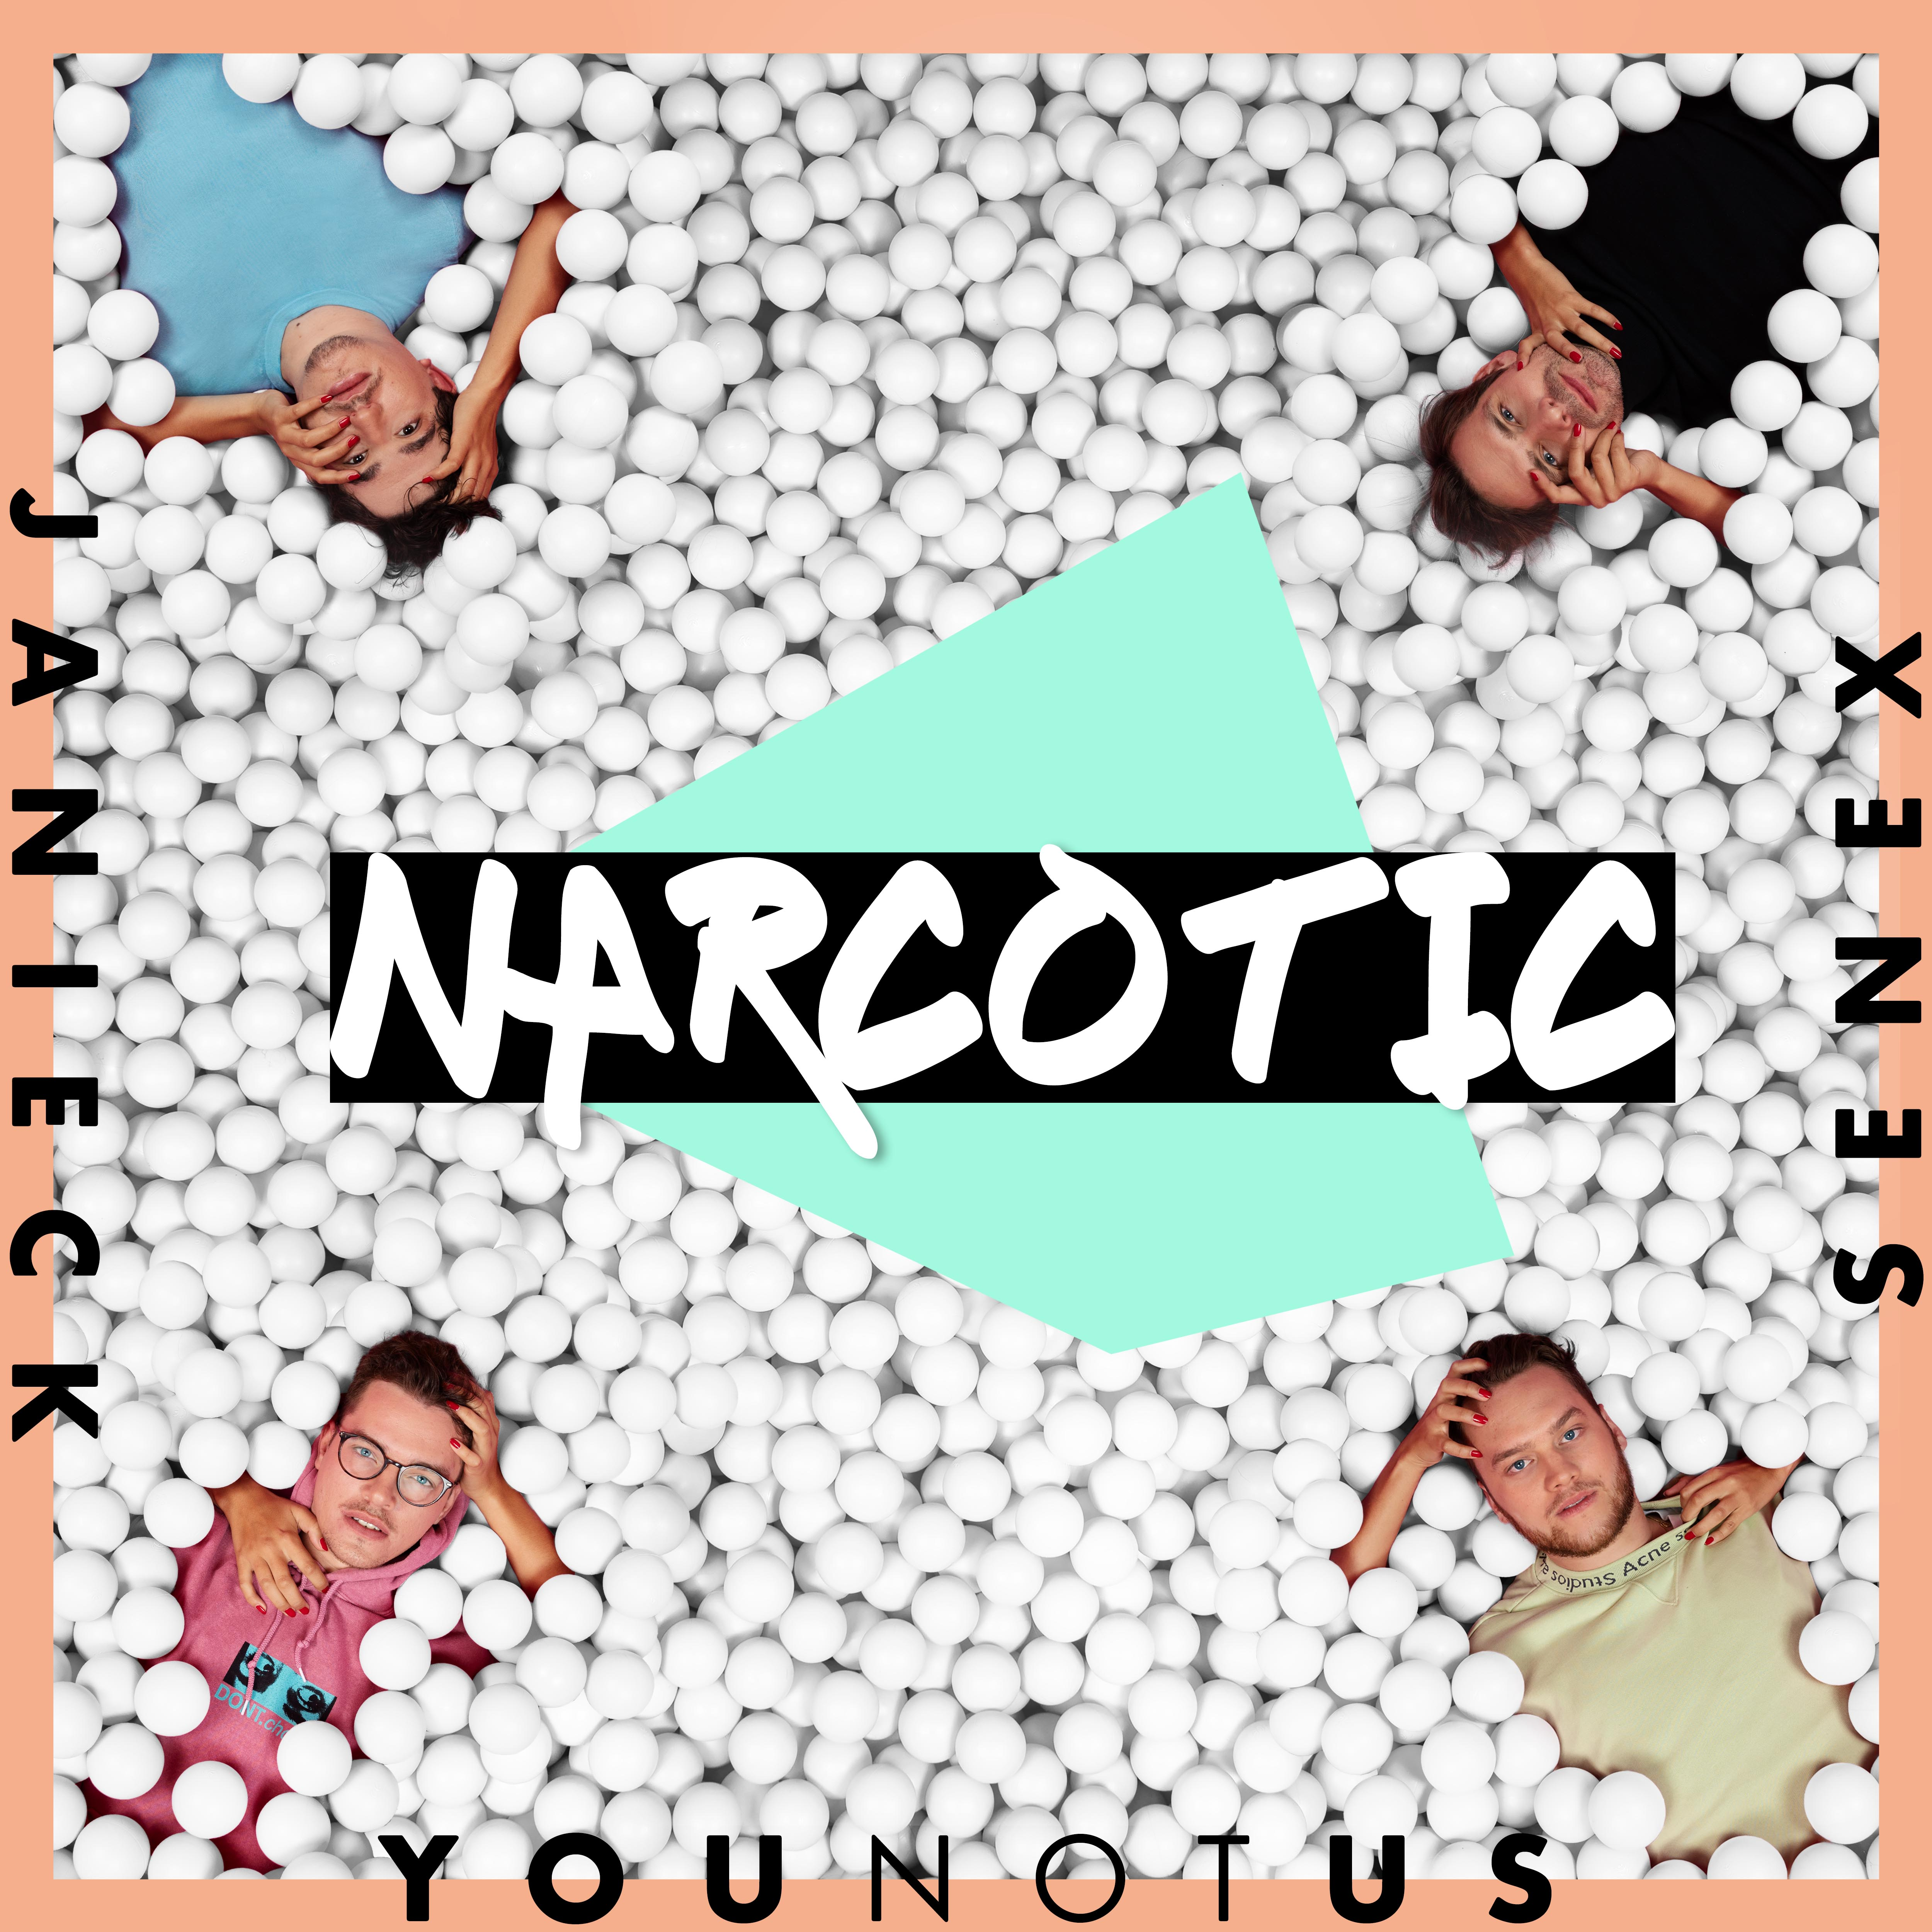 Younotus - Narcotic